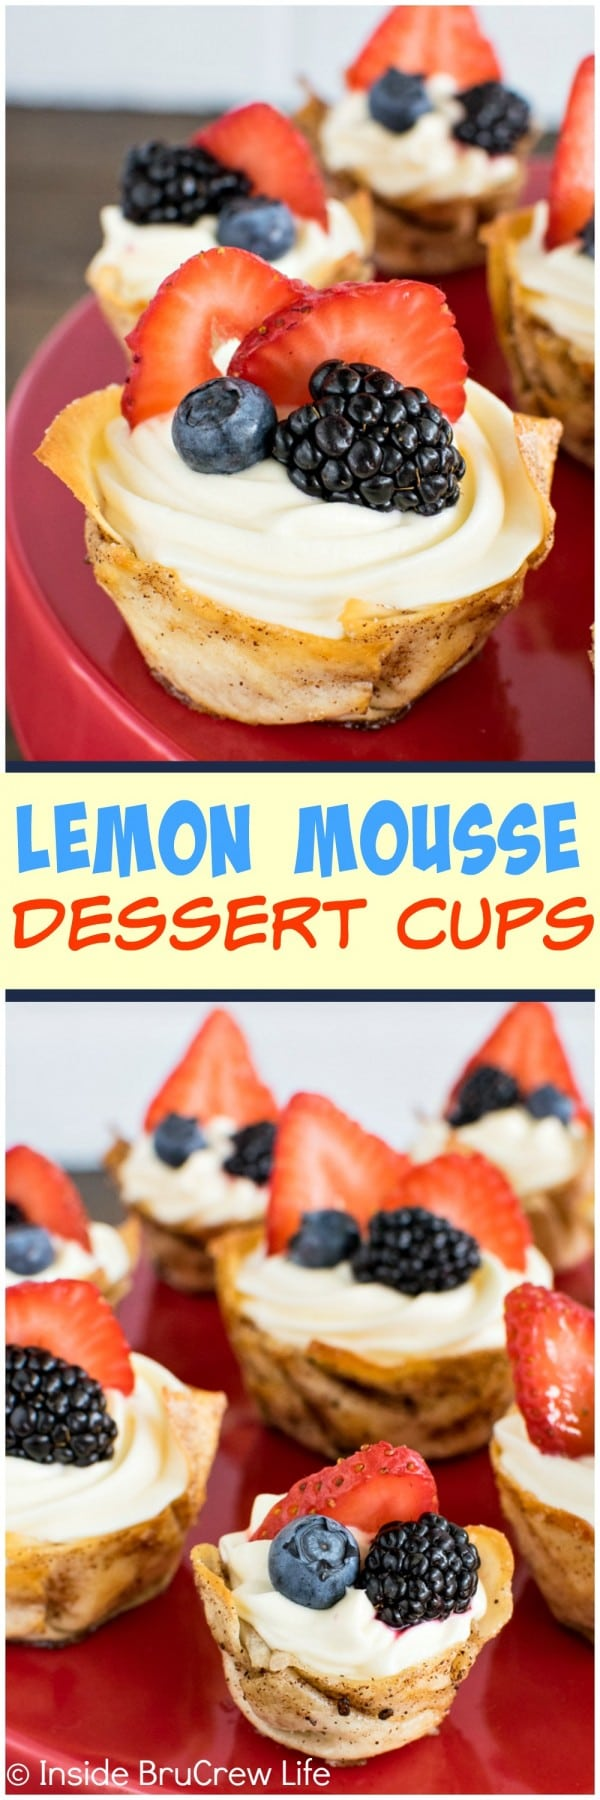 Lemon Mousse Dessert Cups - lemon cheesecake and fresh berries in a fun little dessert cup. Perfect summer dessert recipe!